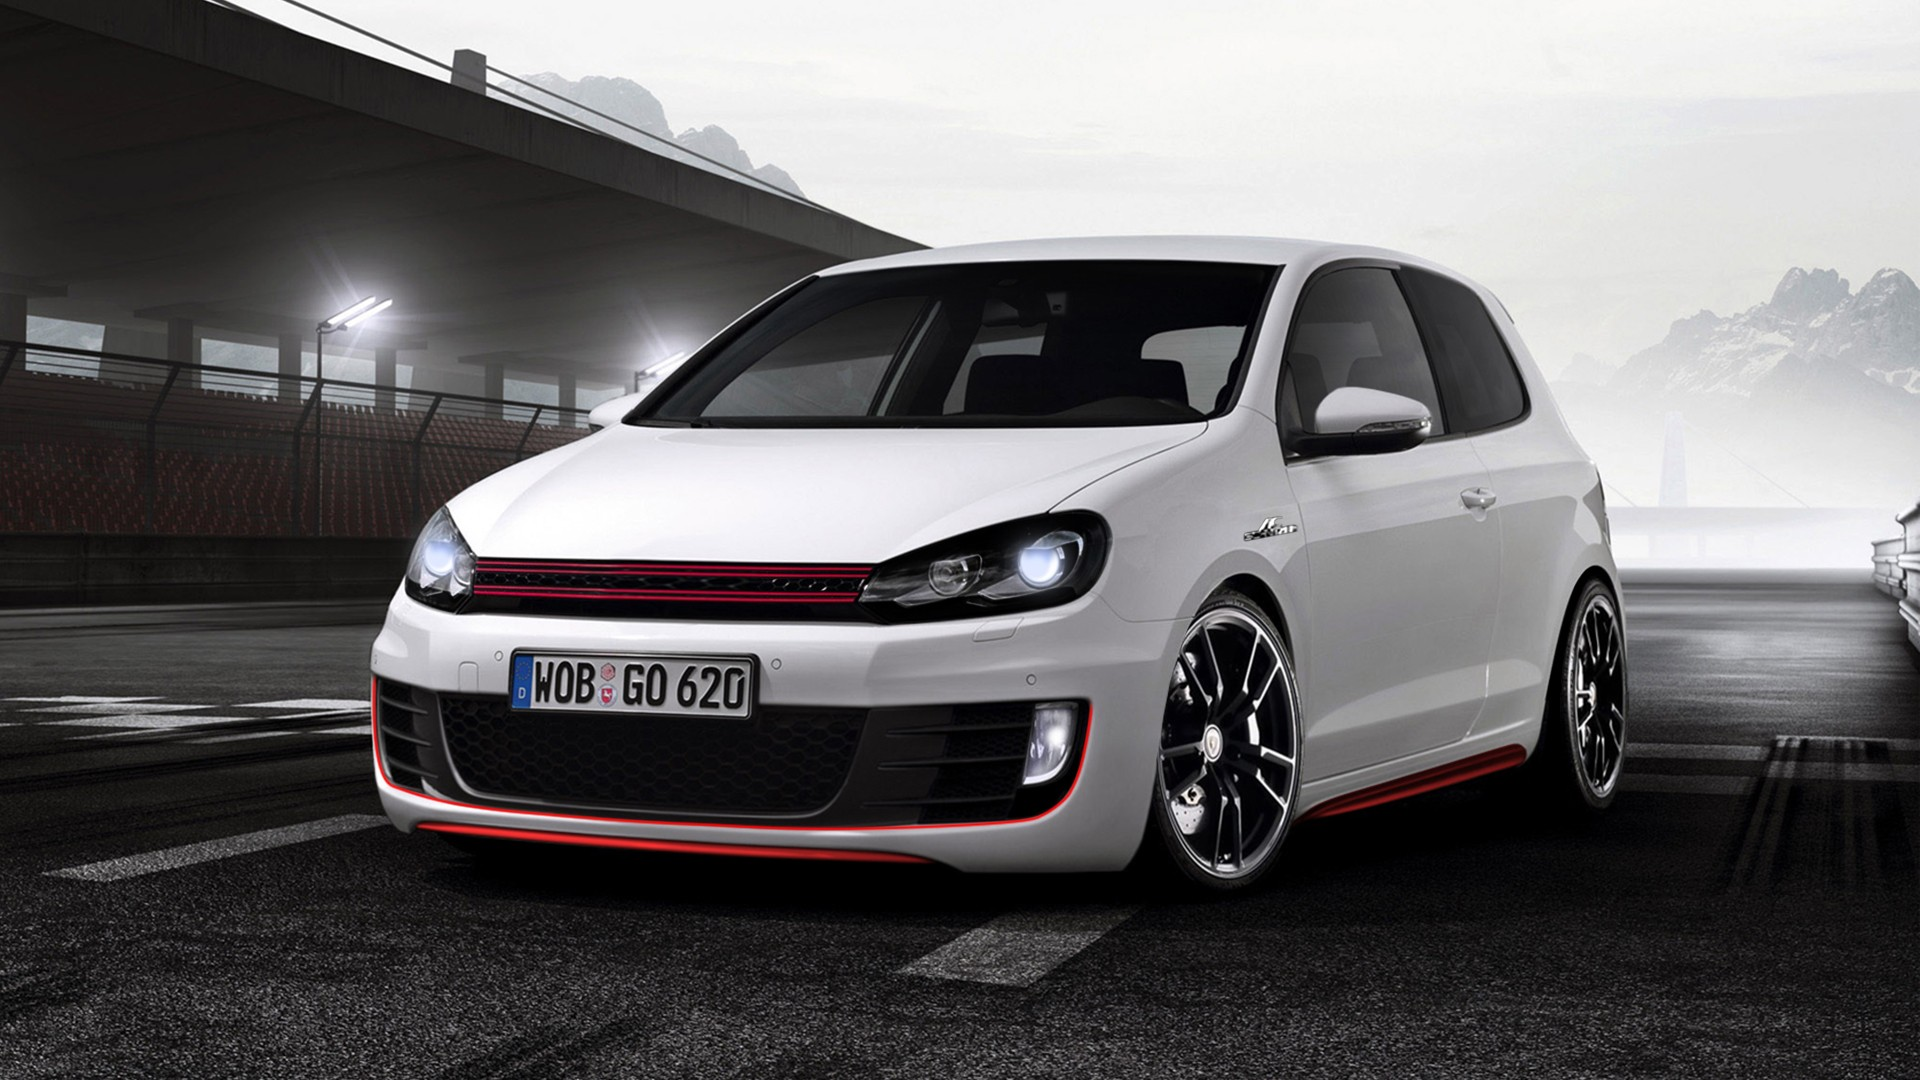 Volkswagen Golf GTI Sport HD Picture Wallpaper Wallpapers HD Picture 1920x1080